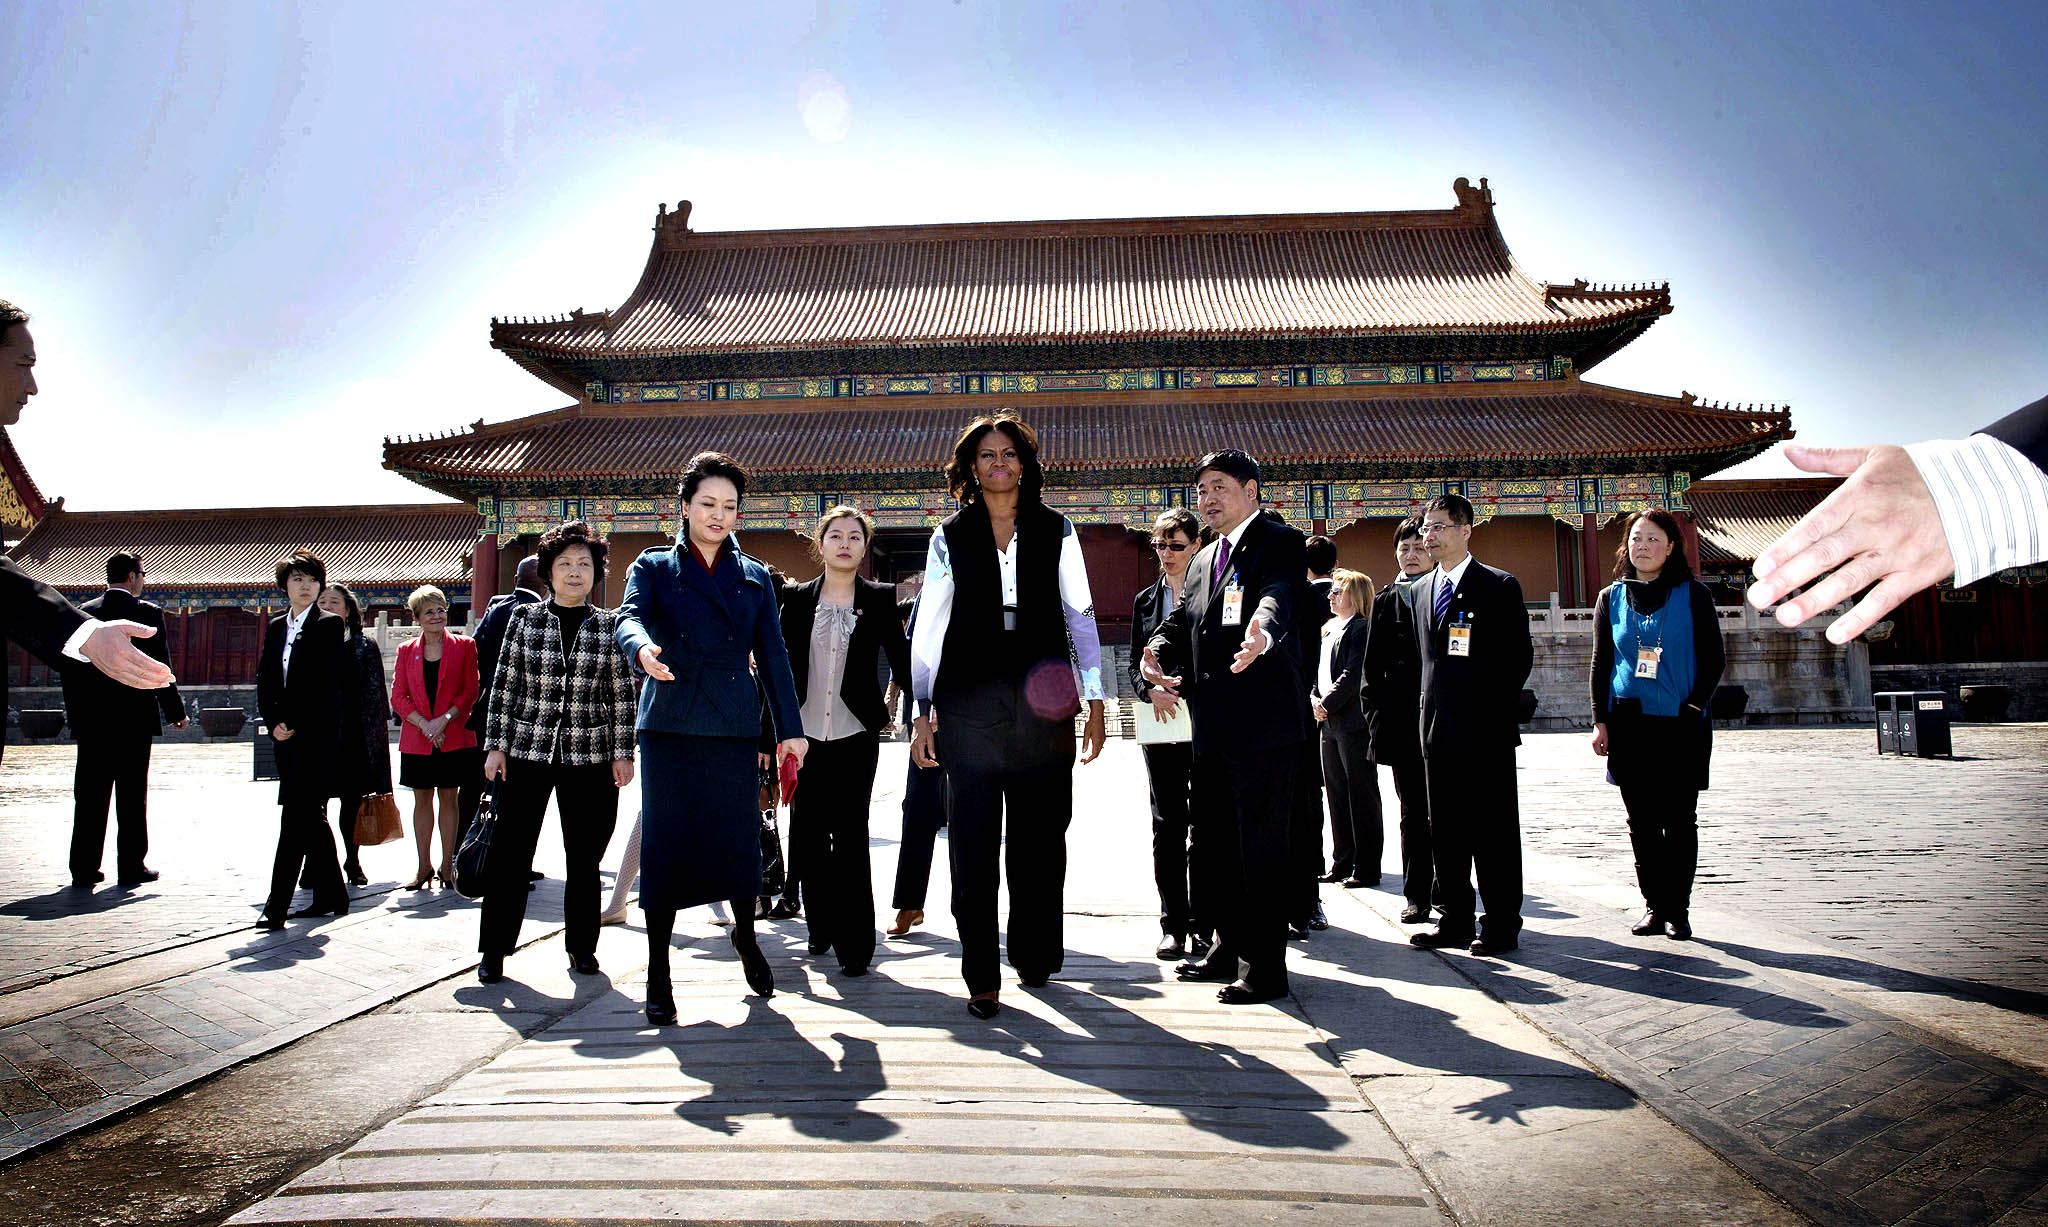 US First Lady Michelle Obama (C) and Peng Liyuan, wife of Chinese President Xi Jinping are escorted by officials as they visit the Forbidden City in Beijing on March 21, 2014.  Michelle Obama arrived in Beijing with her mother and daughters to kick off a seven-day, three-city tour where she will focus on education and cultural exchange.